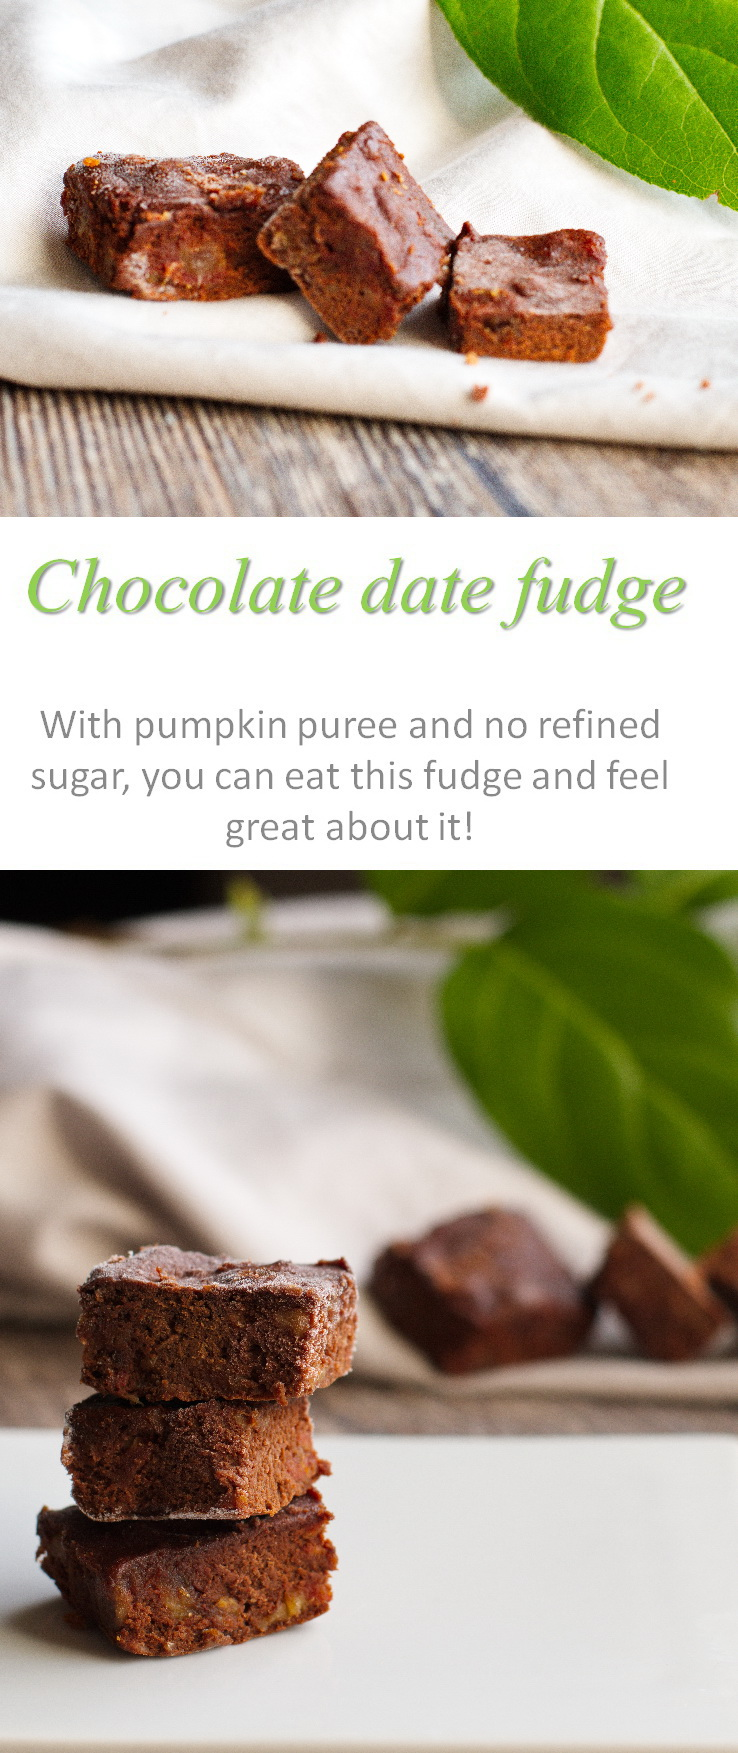 A dairy-free, gluten-free, refined-sugar free chocolate date fudge slice that is so yummy and less than 50 calories a piece. #fudge